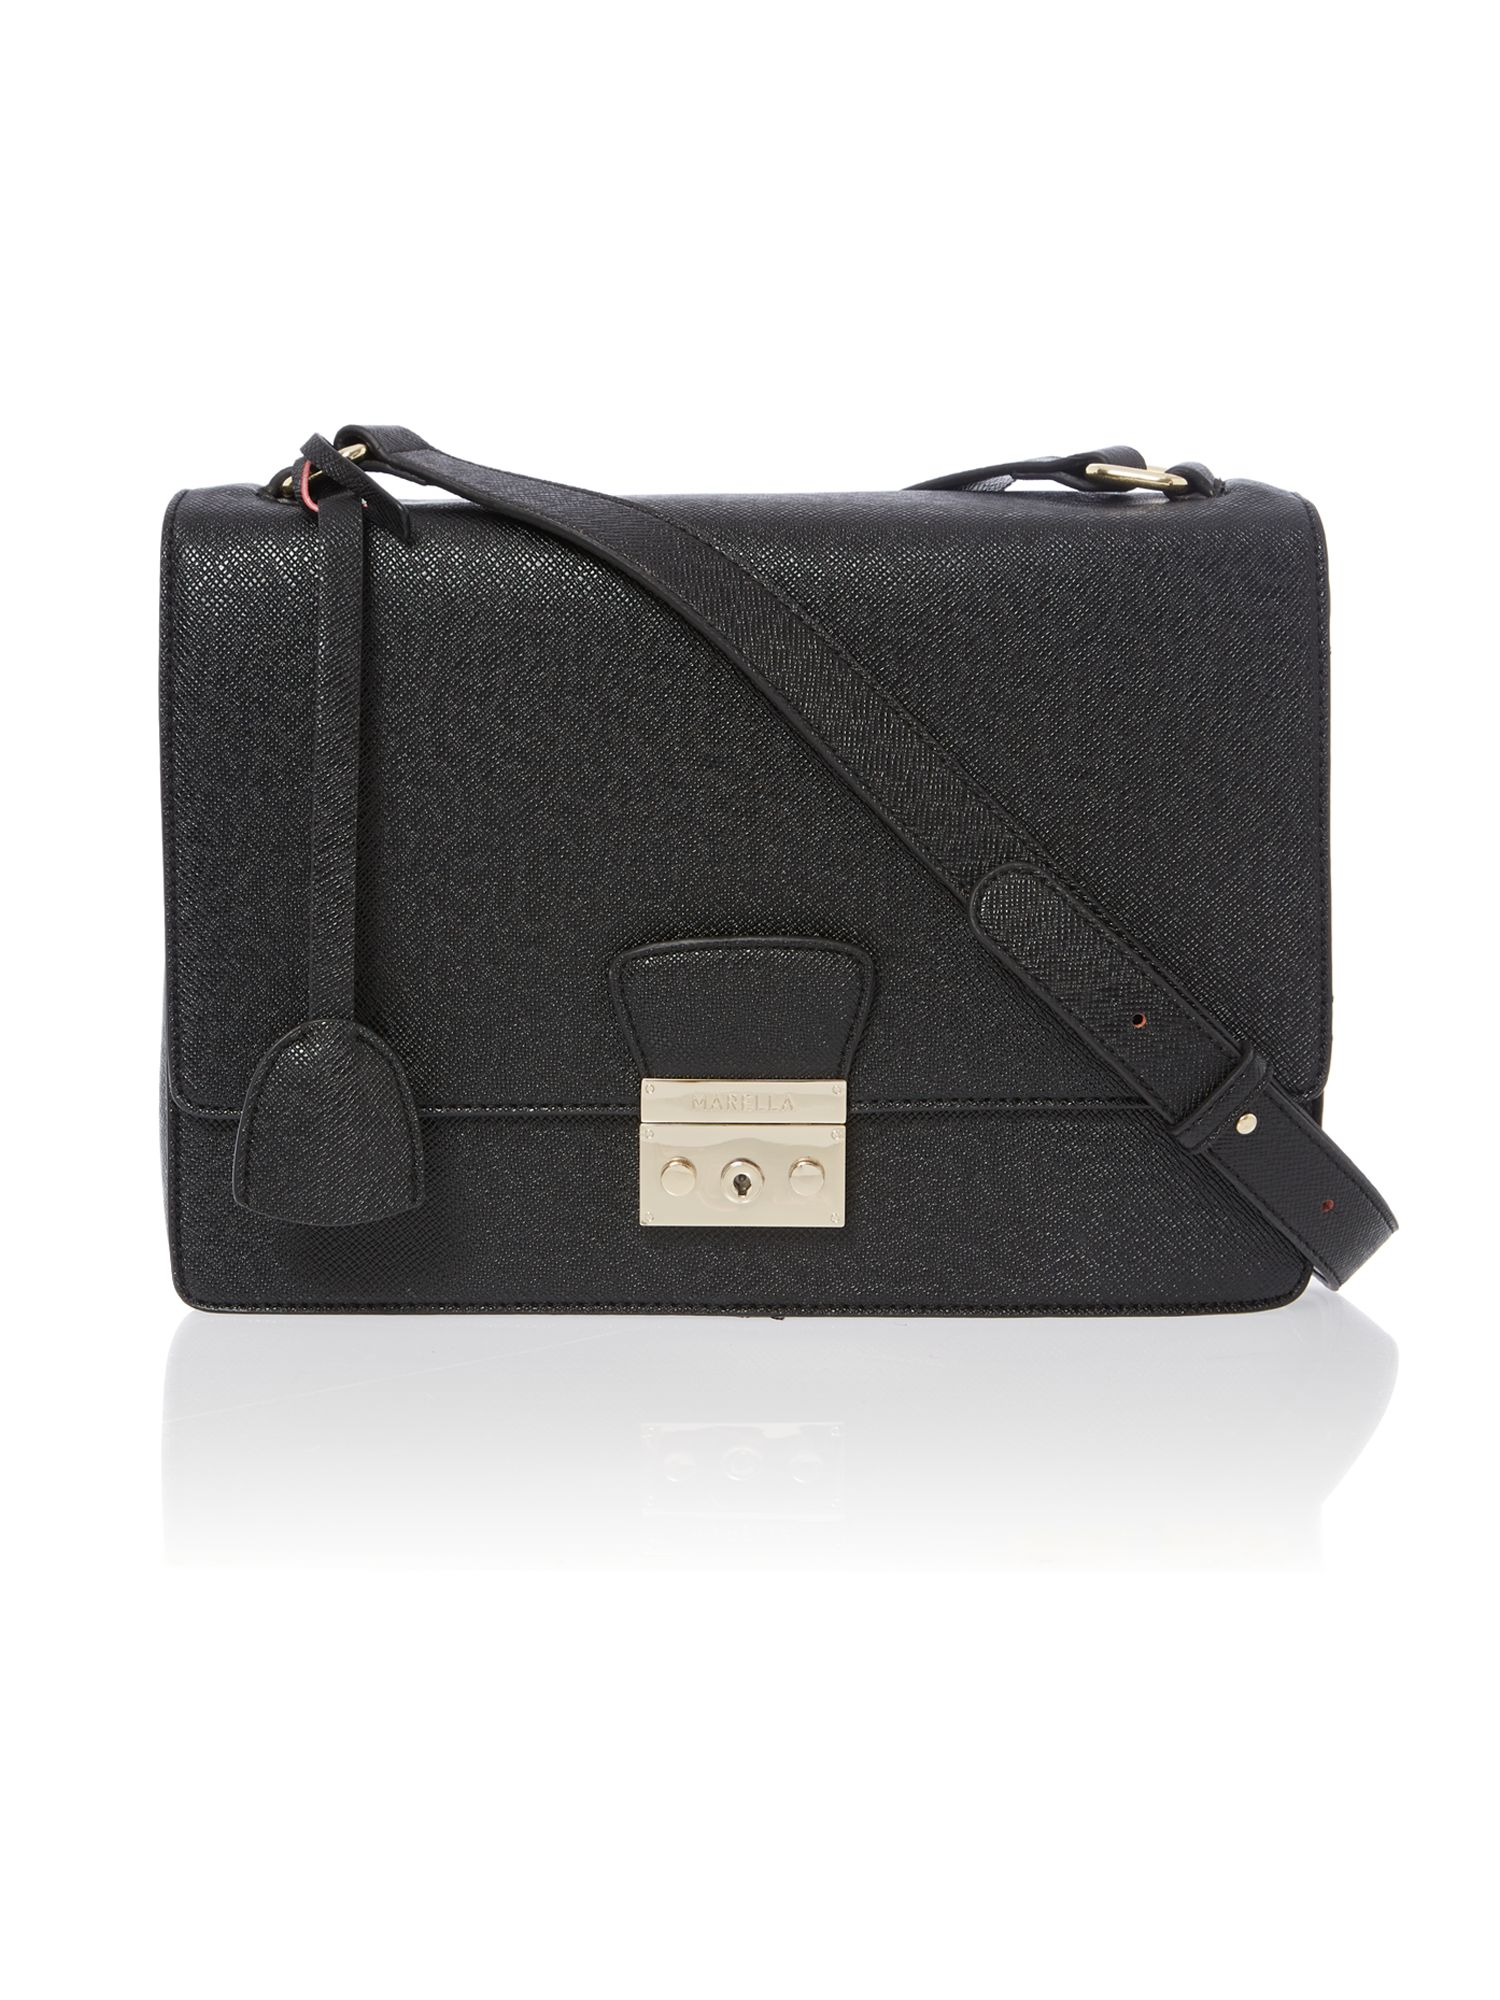 Black large saffiano flapover shoulder bag